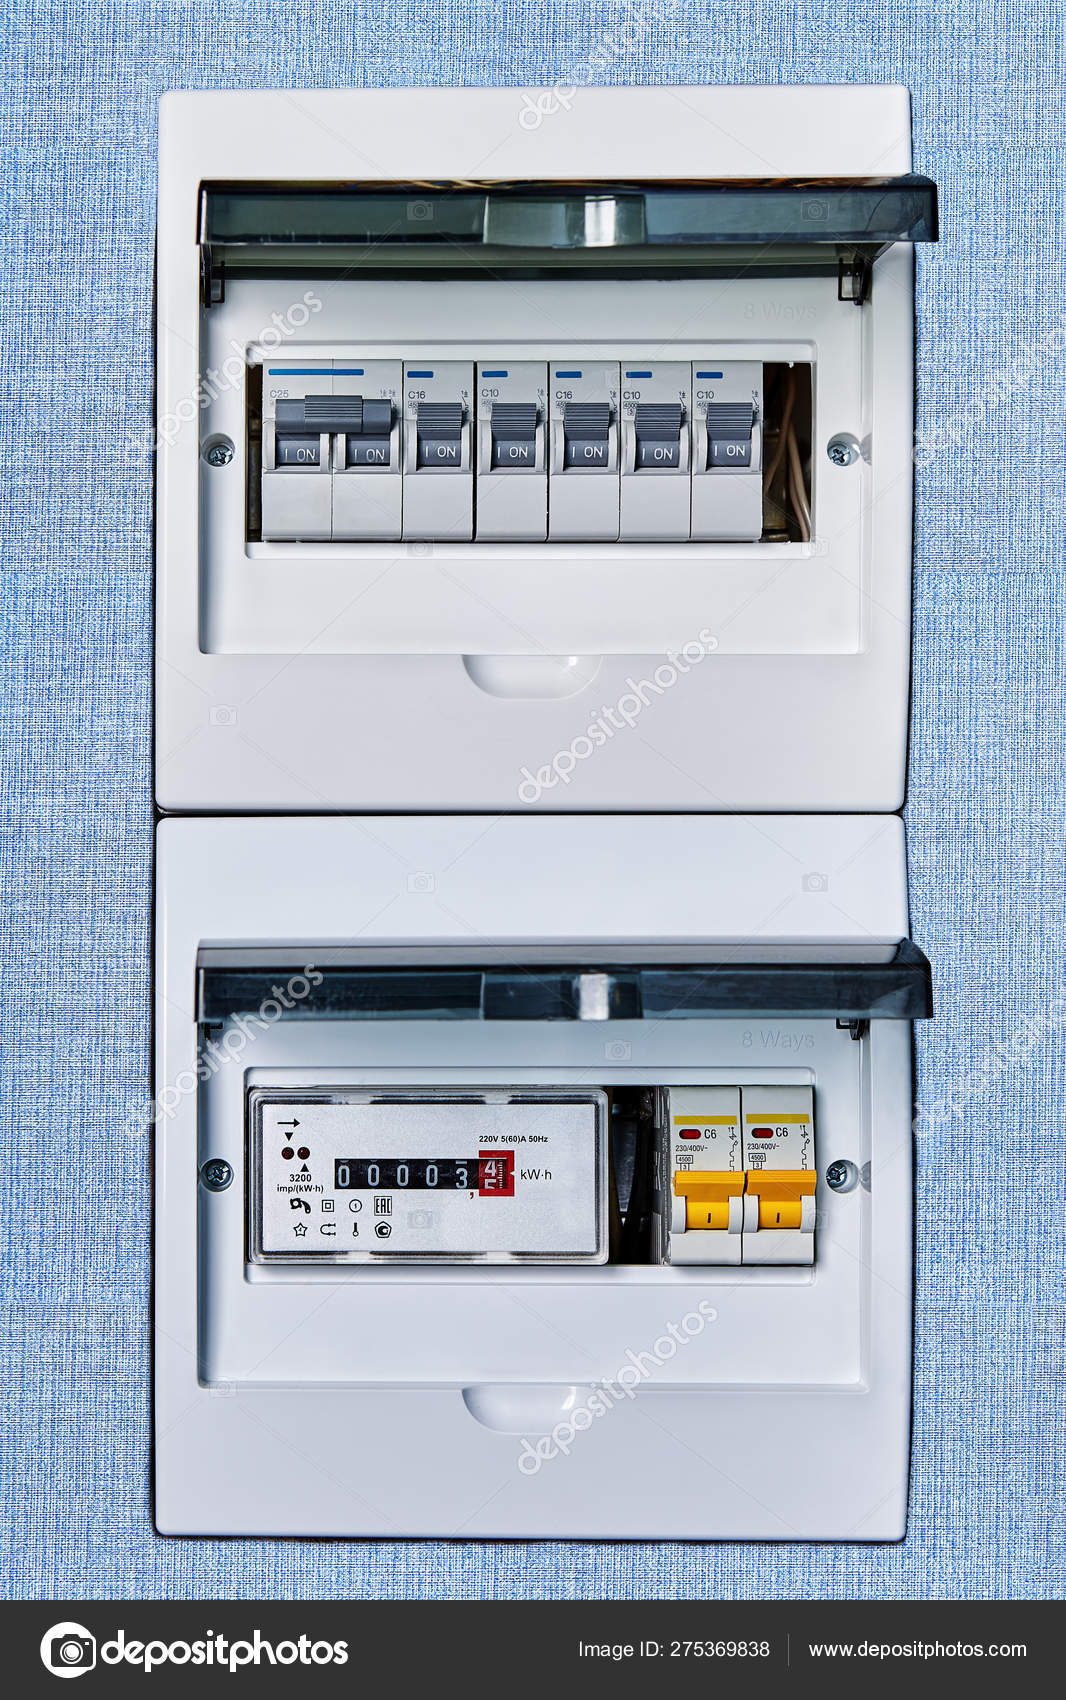 fuse box controls electricity in home \u2013 stock editorial electric trip switch keeps tripping fuse box contains a lot of automata